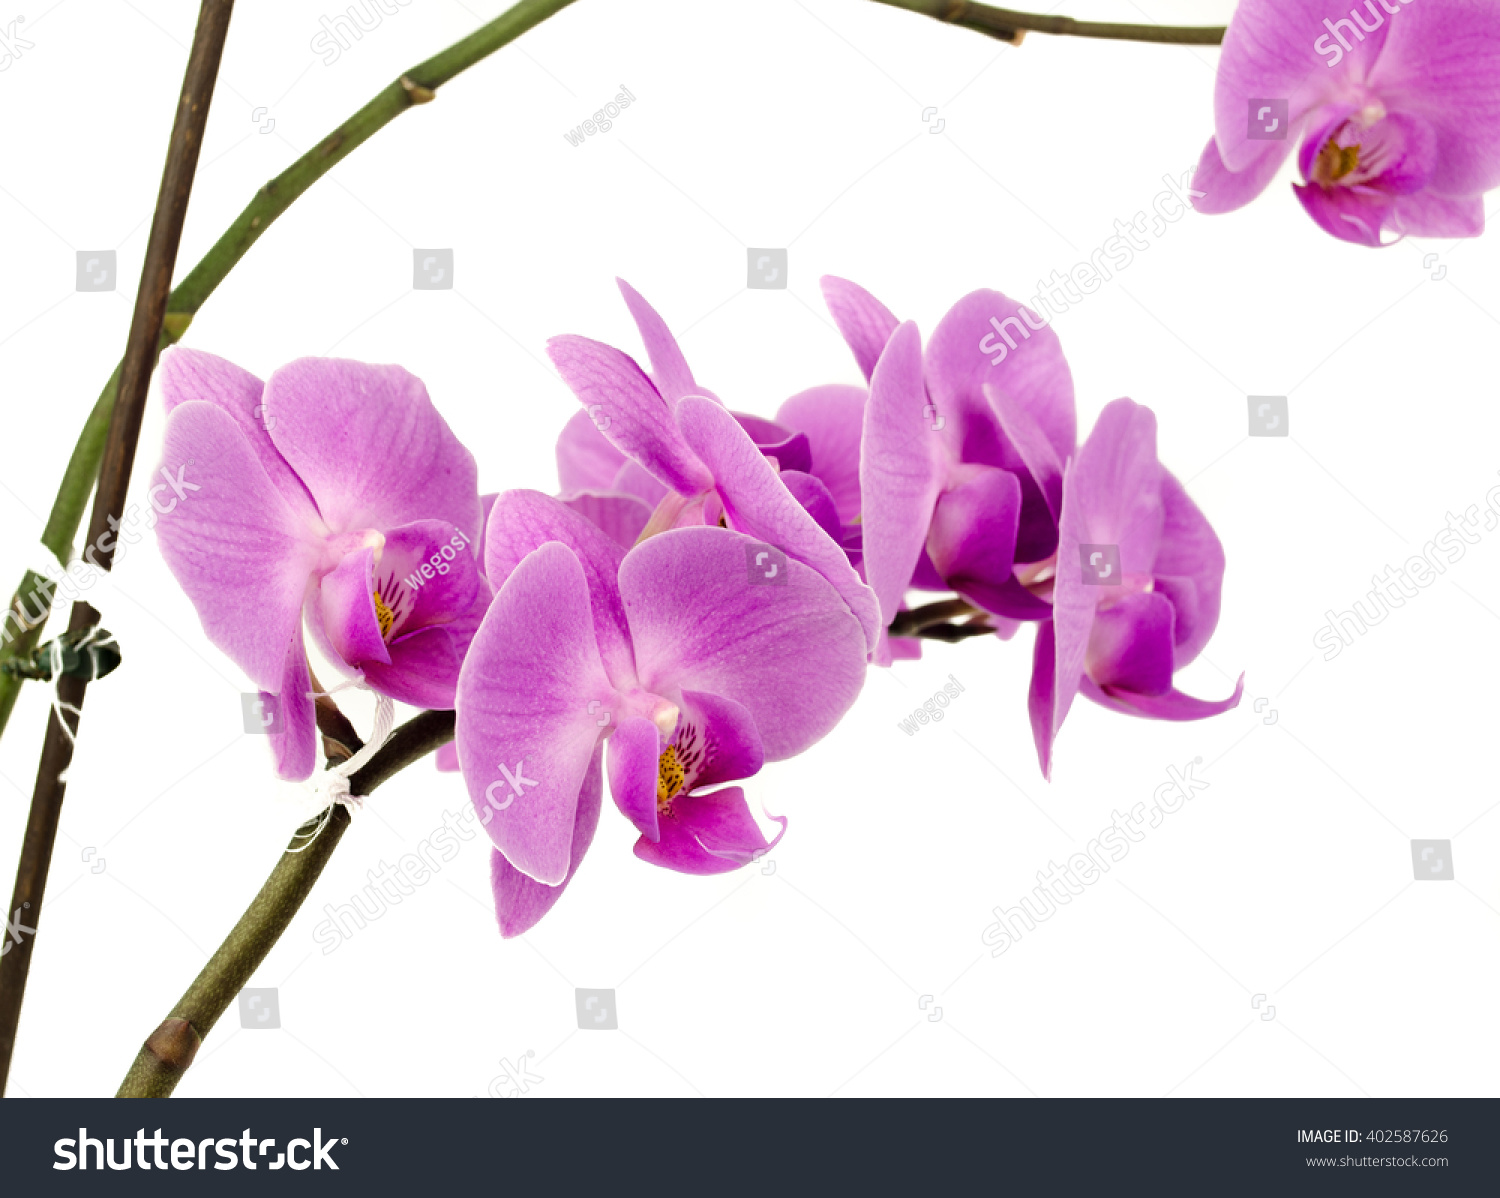 Pink Streaked Orchid Flower Isolated Streaked Orchid Flowers